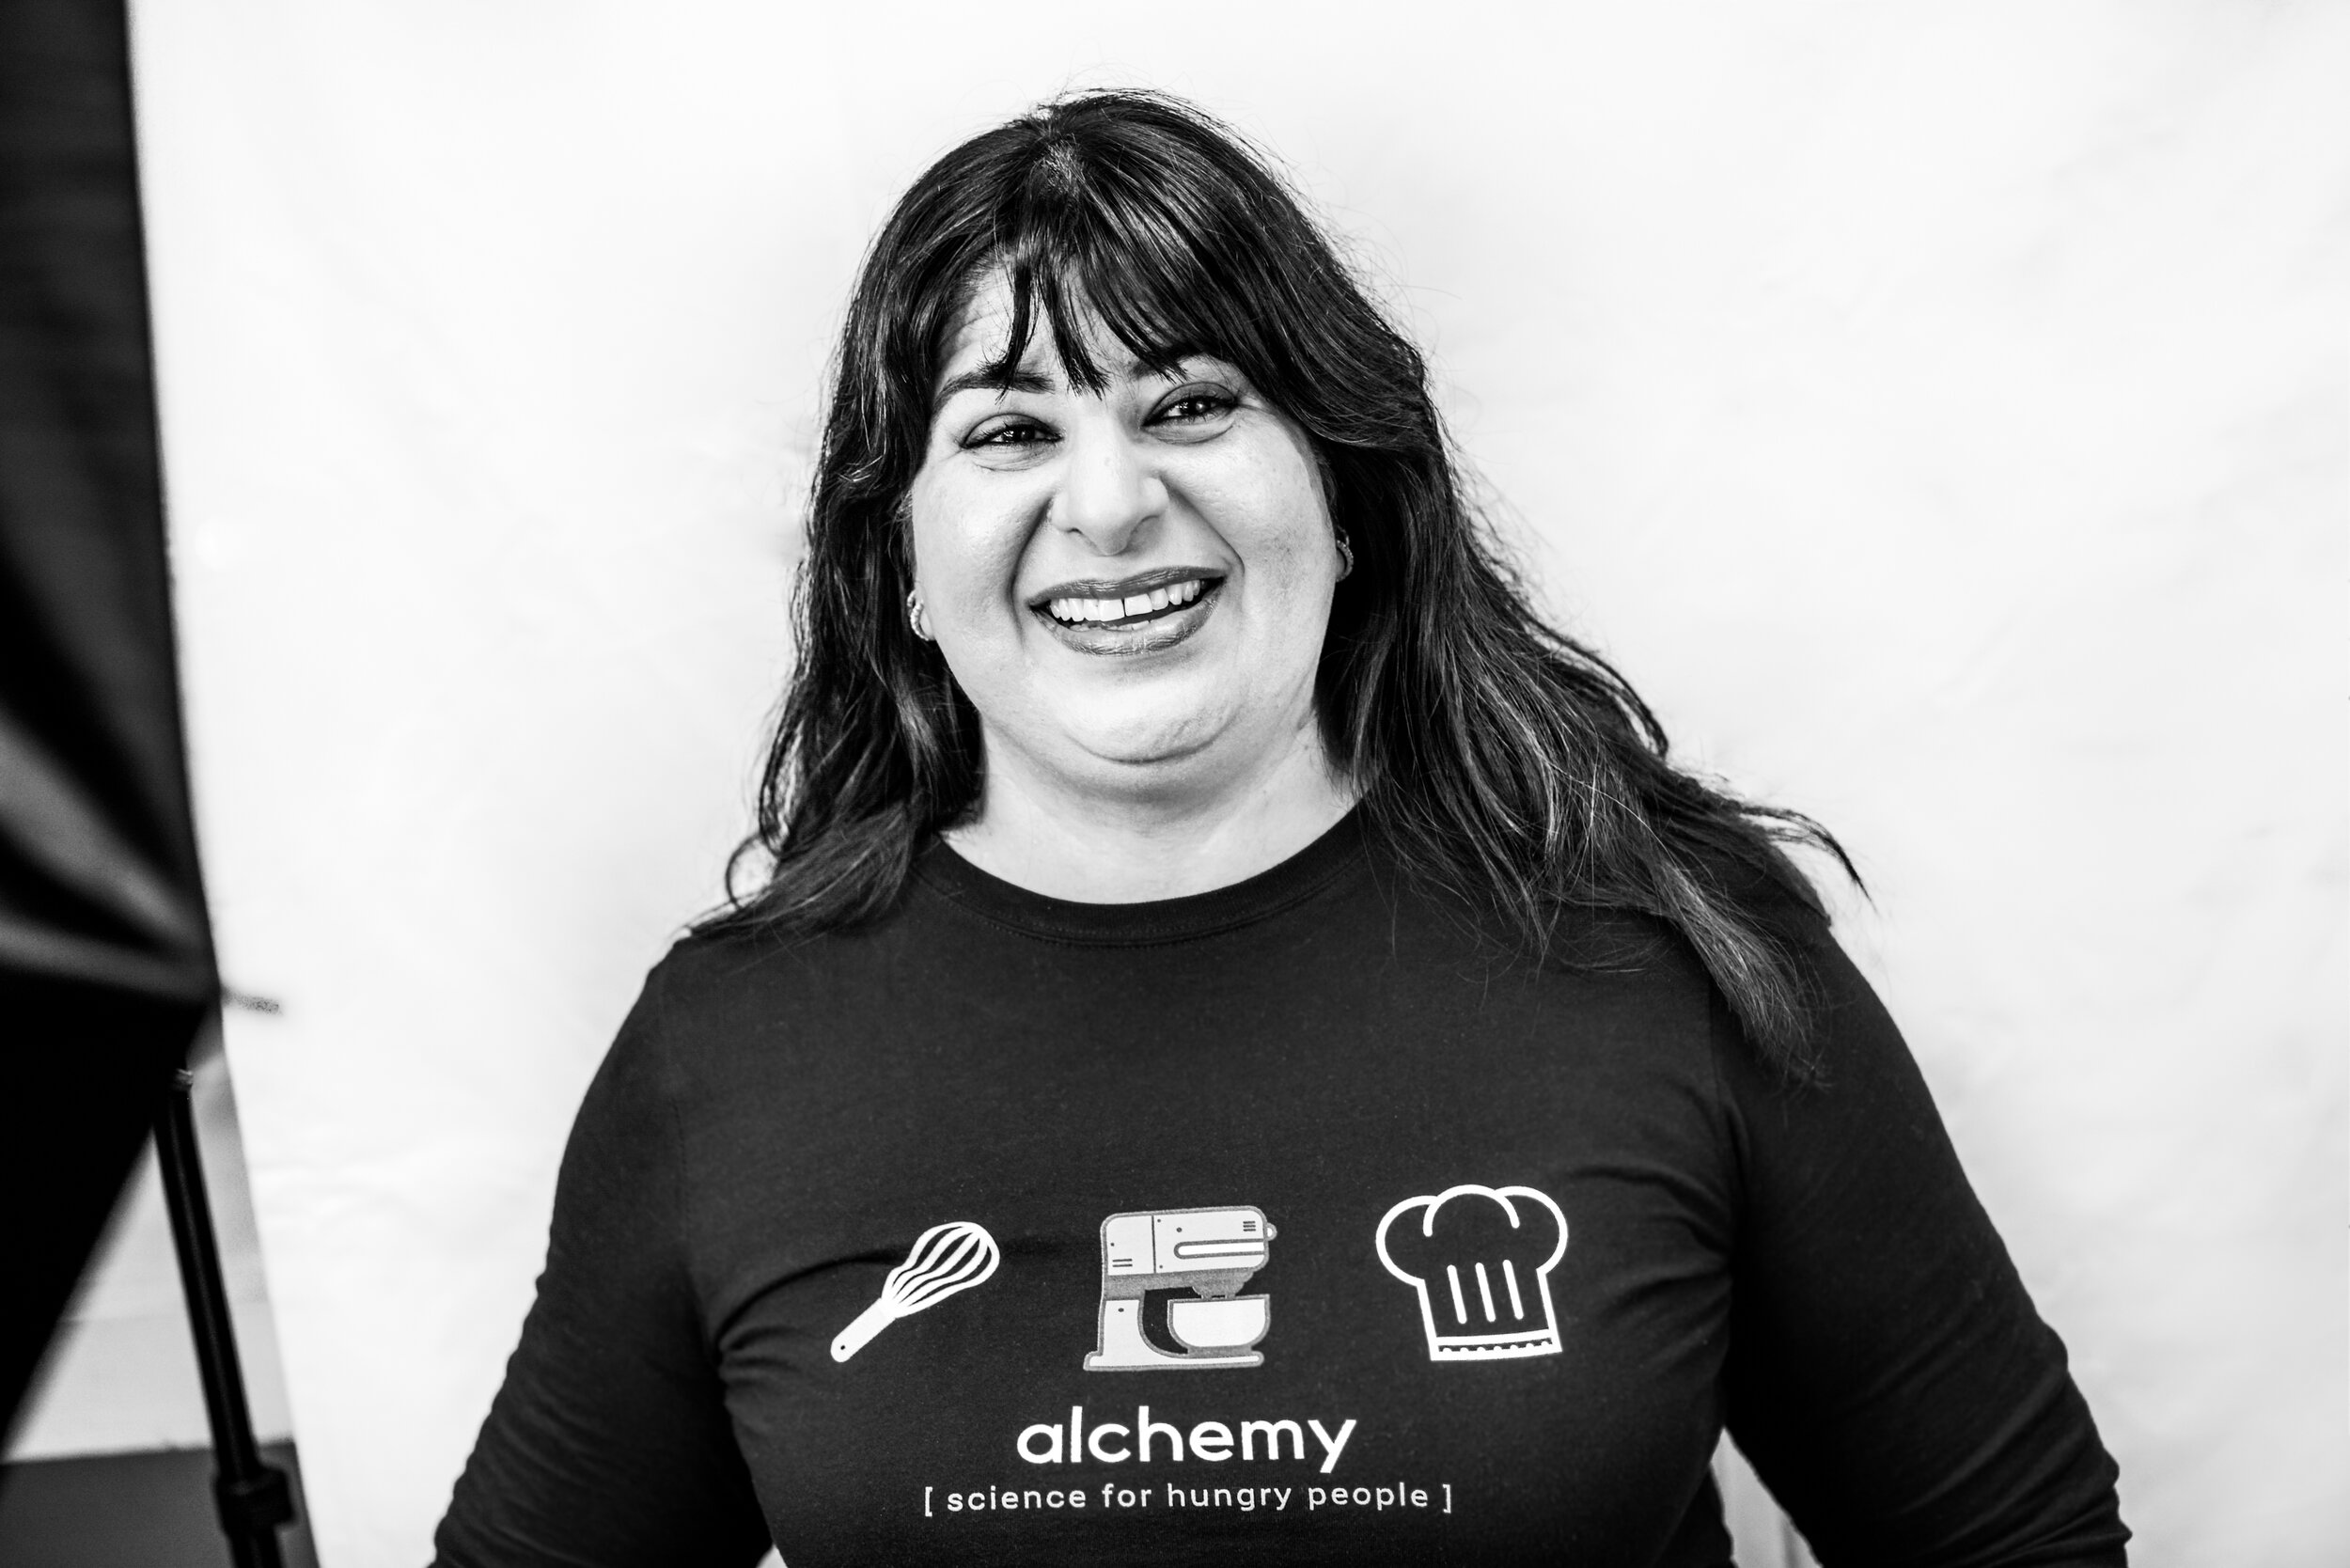 Preeti Waas discusses how she gages her success and overcomes obstacles in her career as a baker and manager of her own bakery. Photo by Megan Crist.